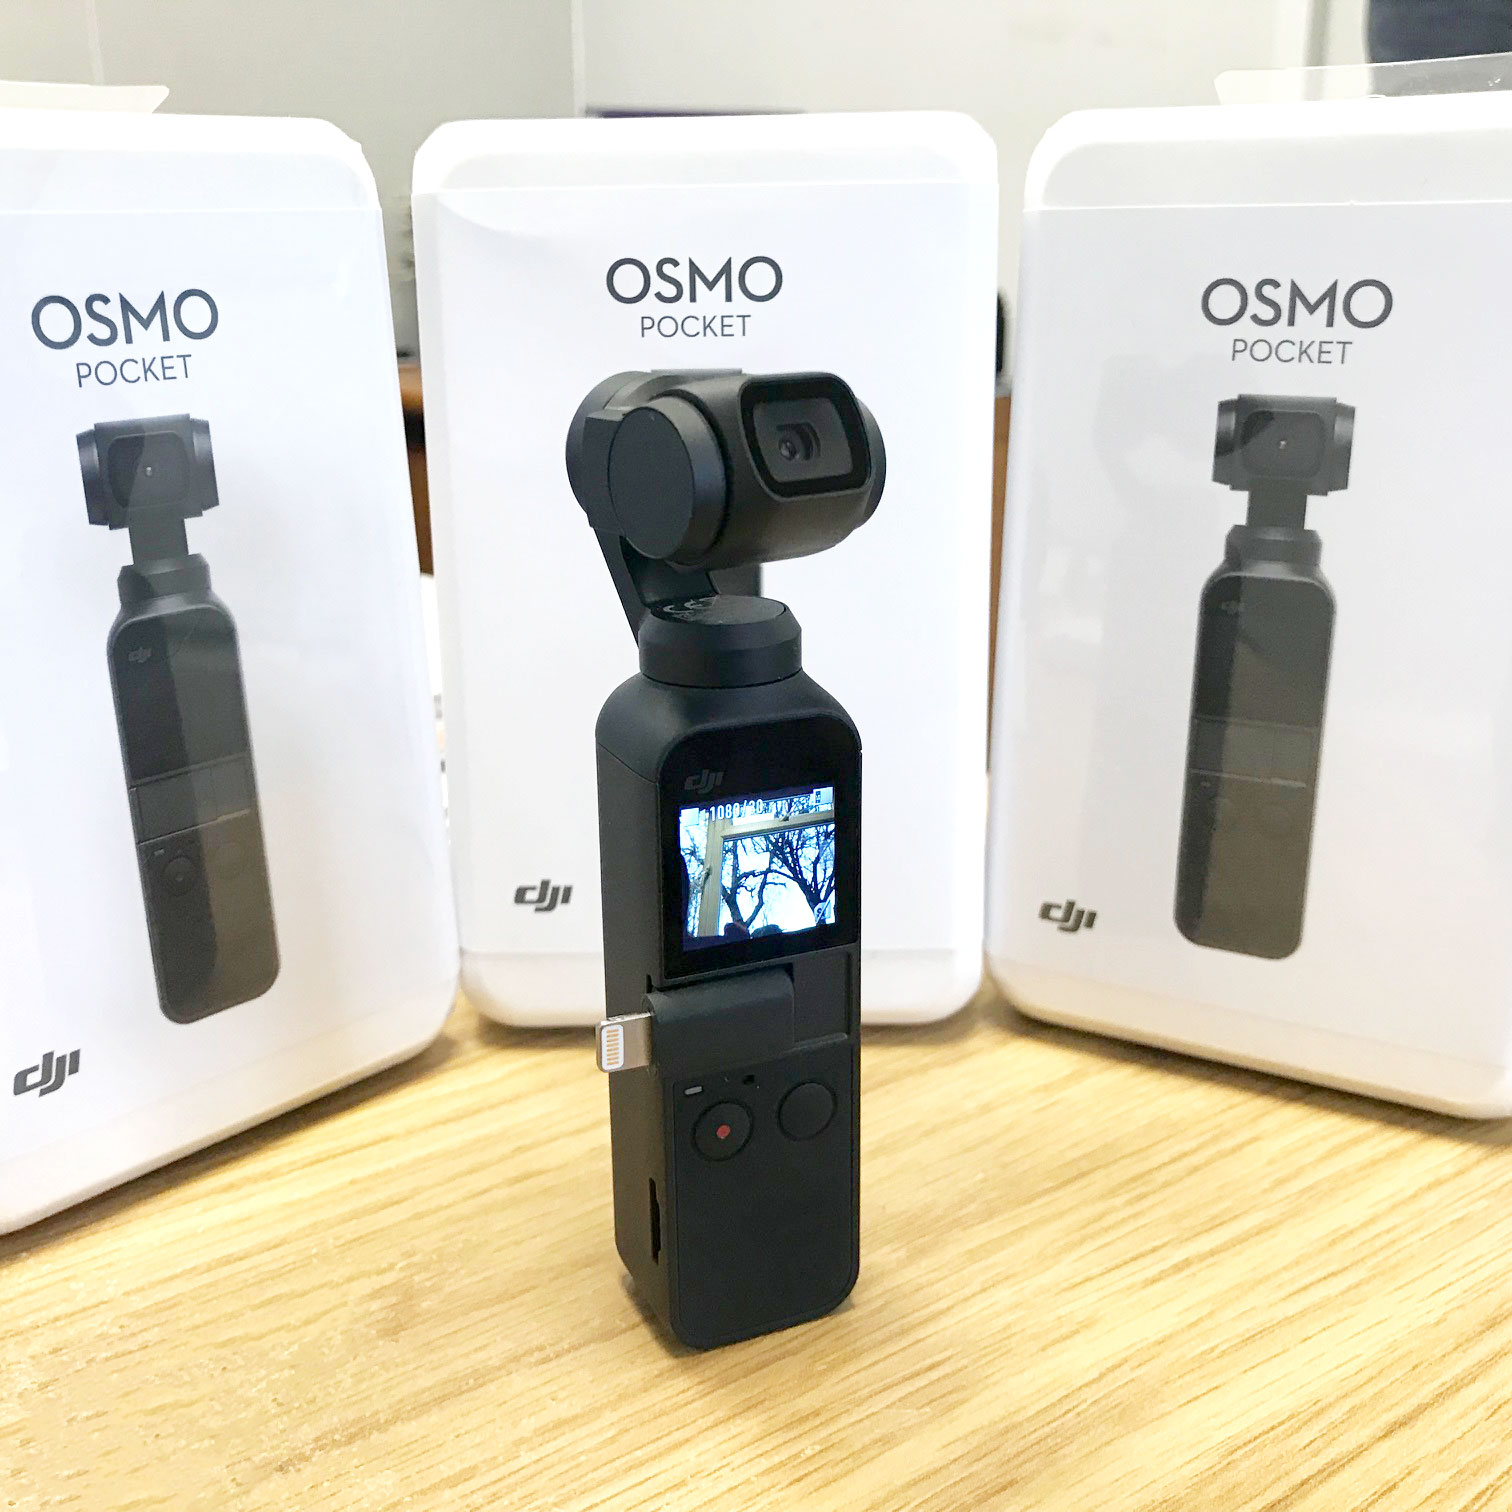 NOW IN STOCK: The DJI Osmo Pocket